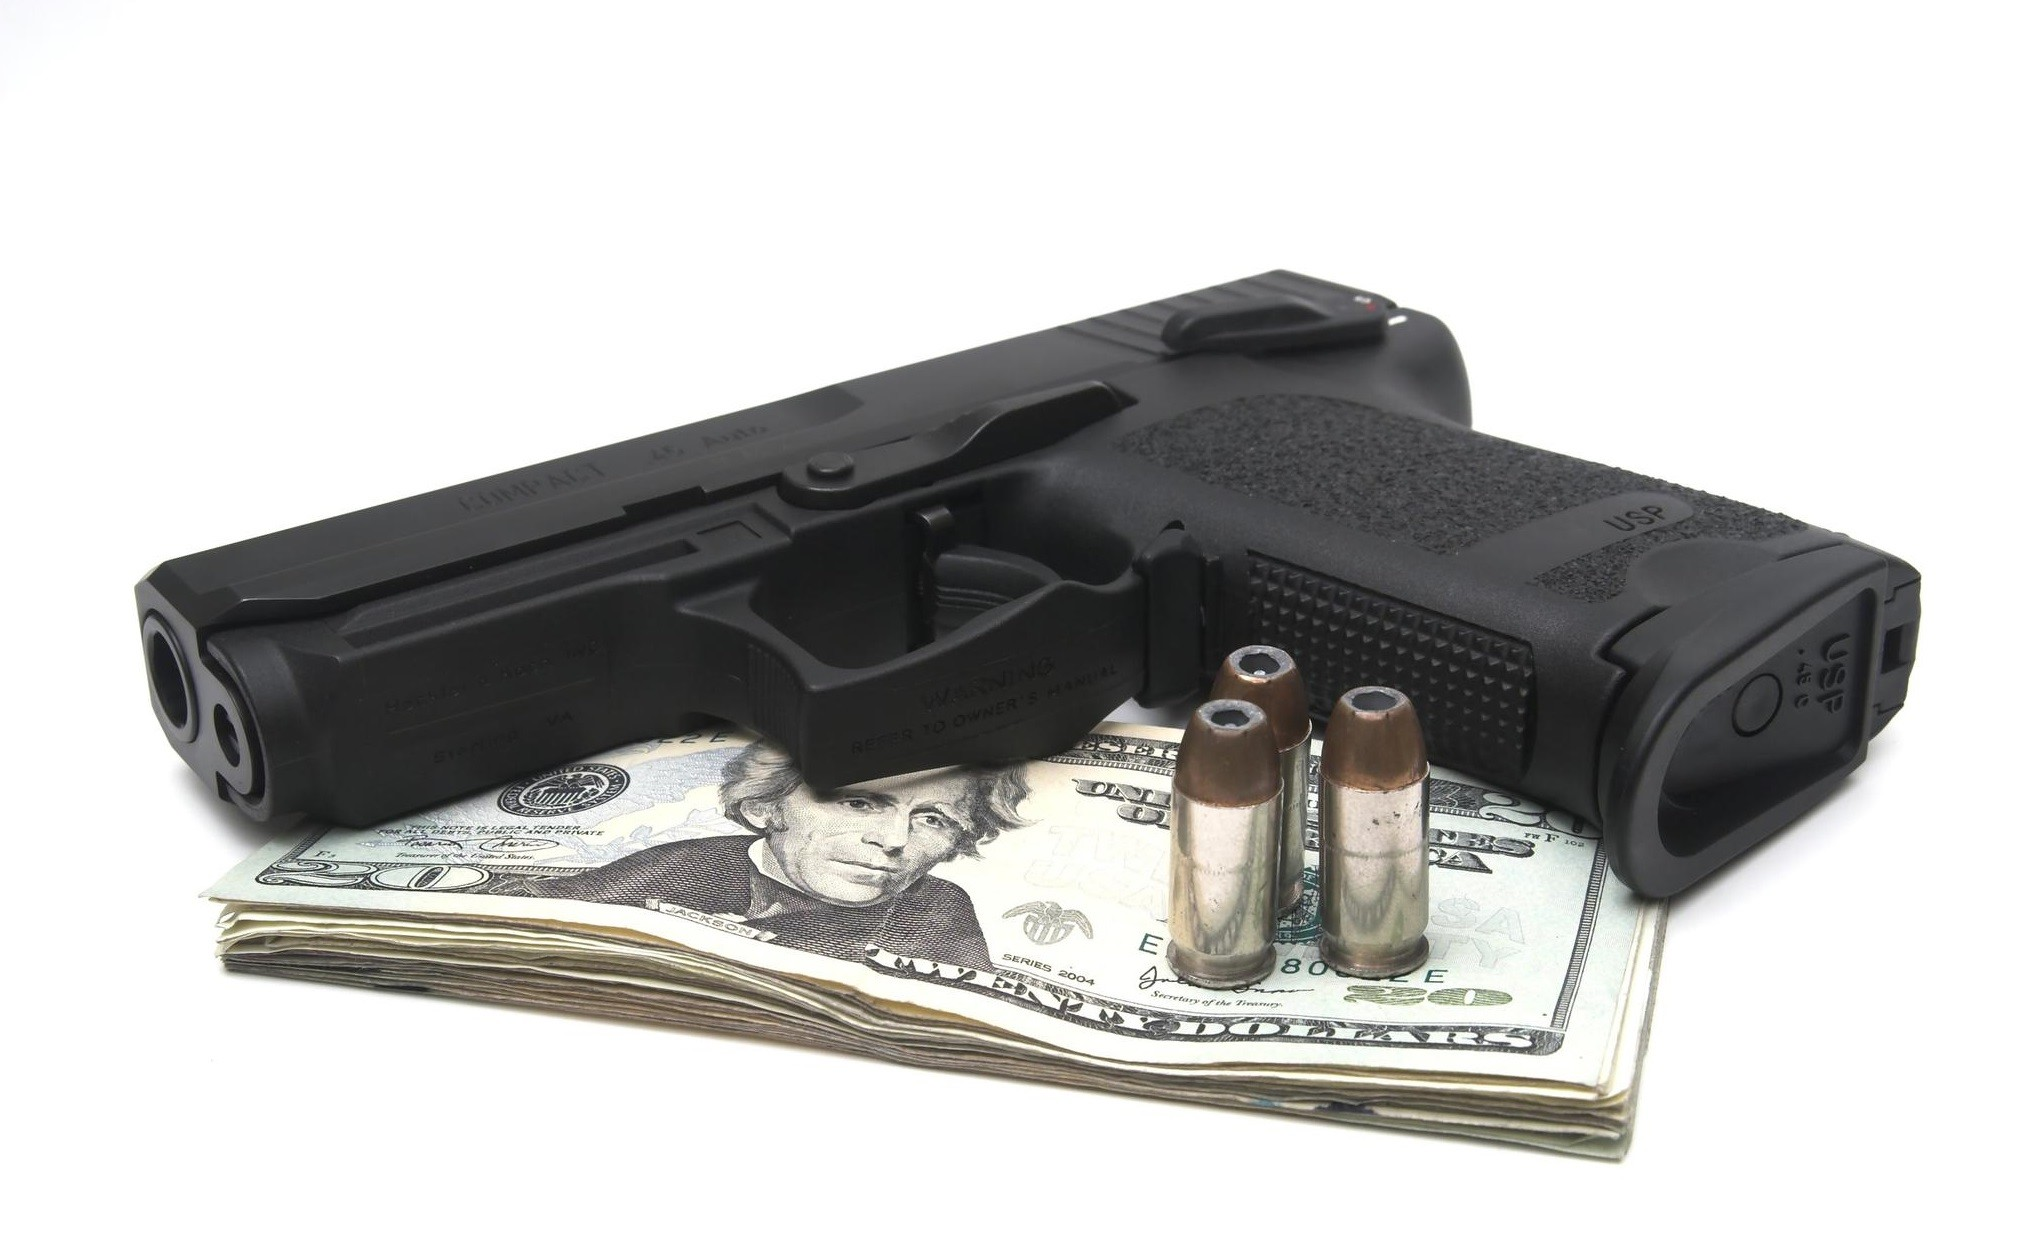 Android 3d Wallpaper 9apps Guns And Money Wallpaper 61 Pictures